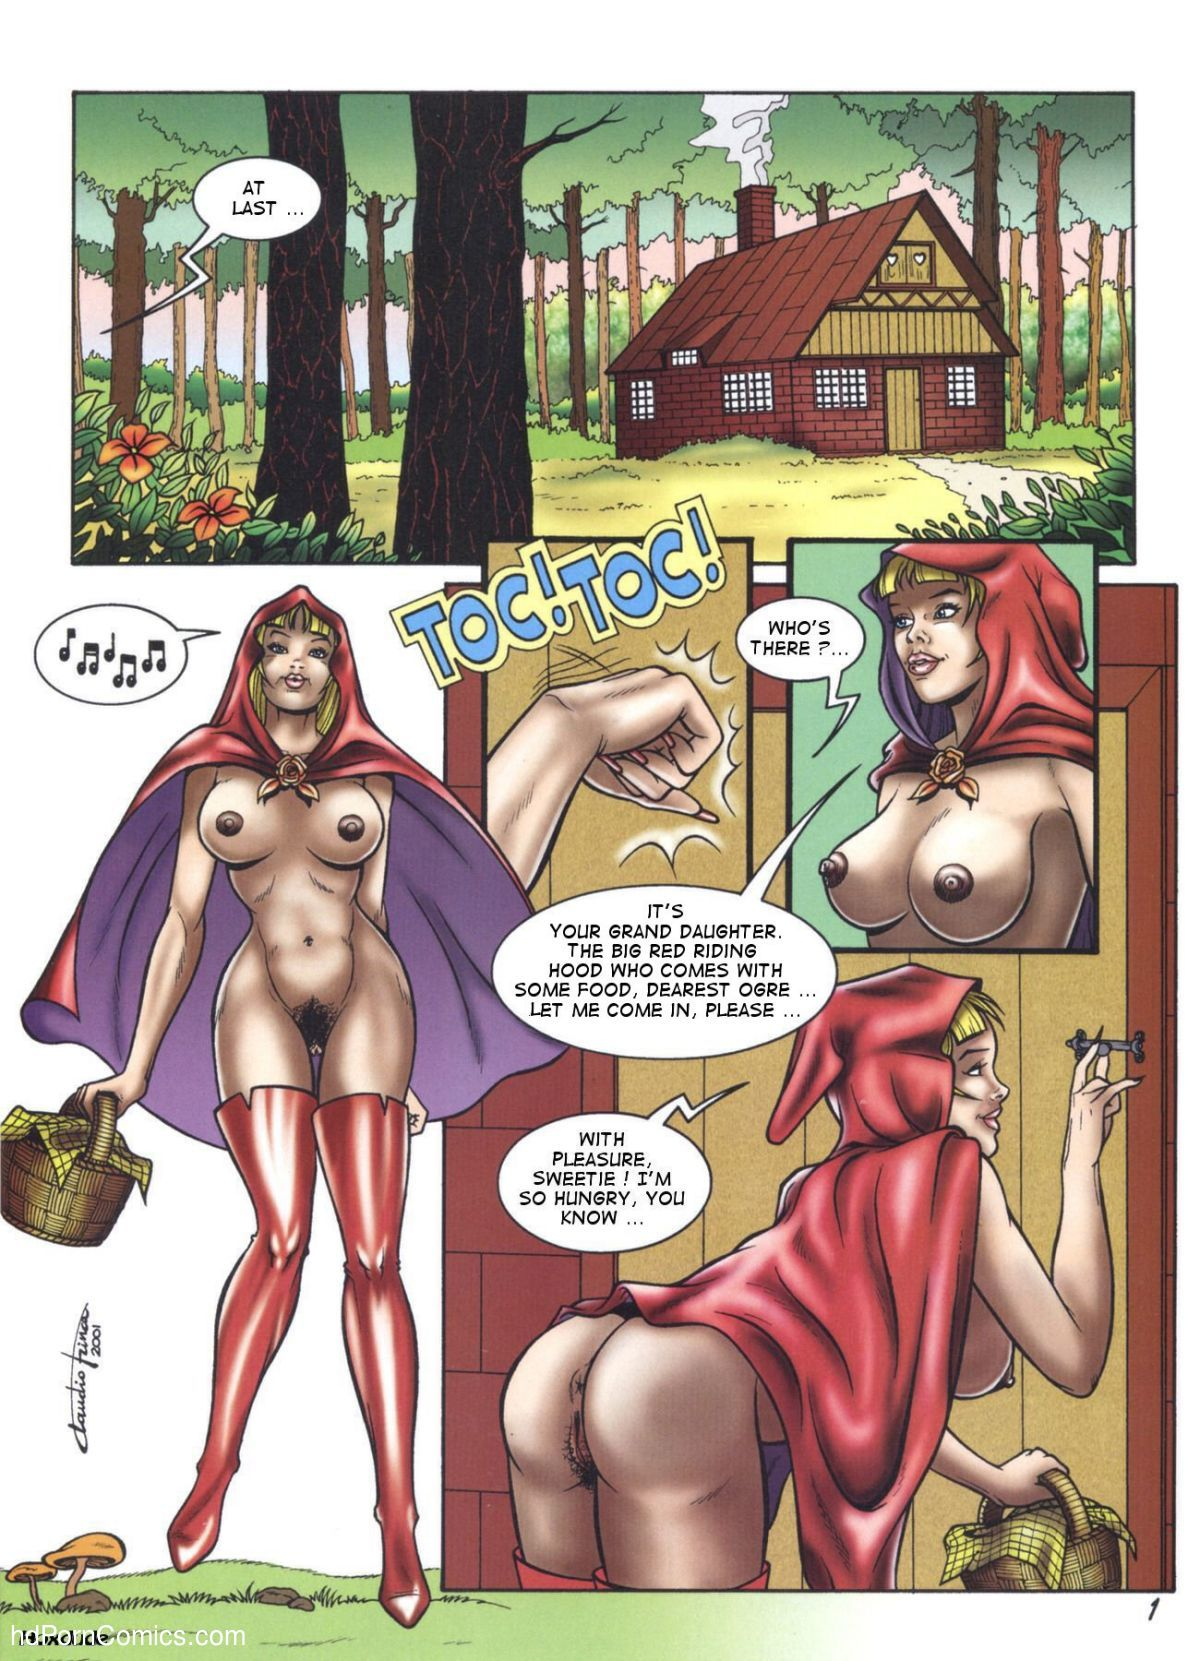 Have hit Little red riding hood cartoon porn for that